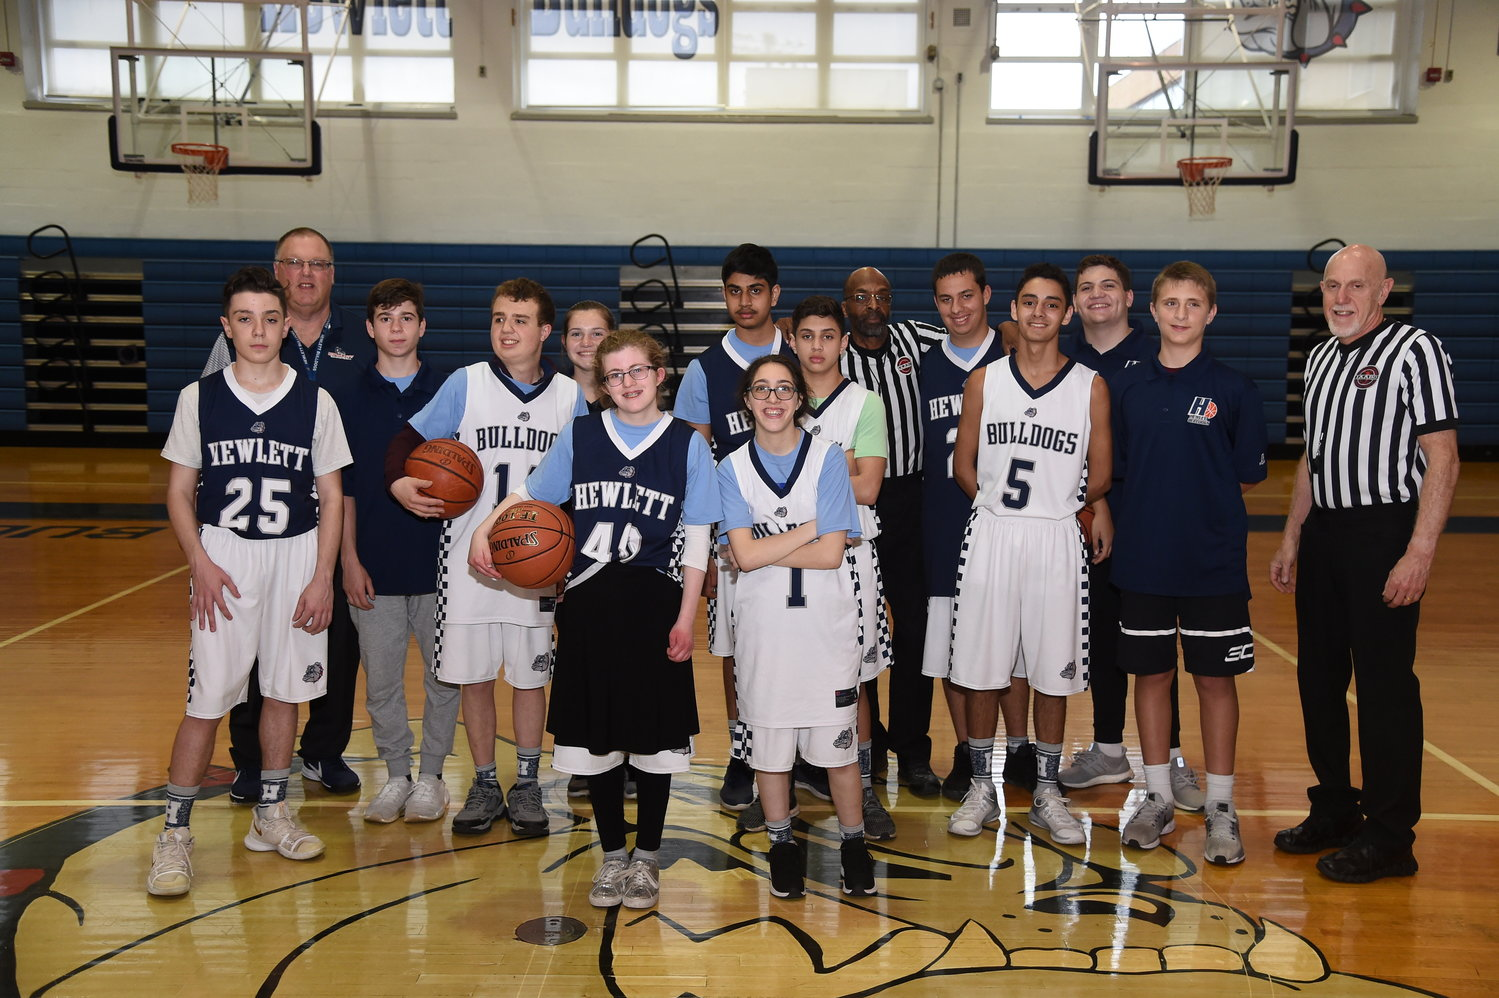 Hewlett High School's unified basketball team with coach Bill Dubin, far right in the back on May 6. The blue team is Bilaal Sadia (32), Jared Bostoff (21), Stephen Hoffman (25), Saif Kamal (24) and Shani Zlan (40). The white team is Matthew Dougherty (14), Ariana Siegel (1), Josh Tepper (5), Diego Gonzalez (13) and Daniel Gardener (3).